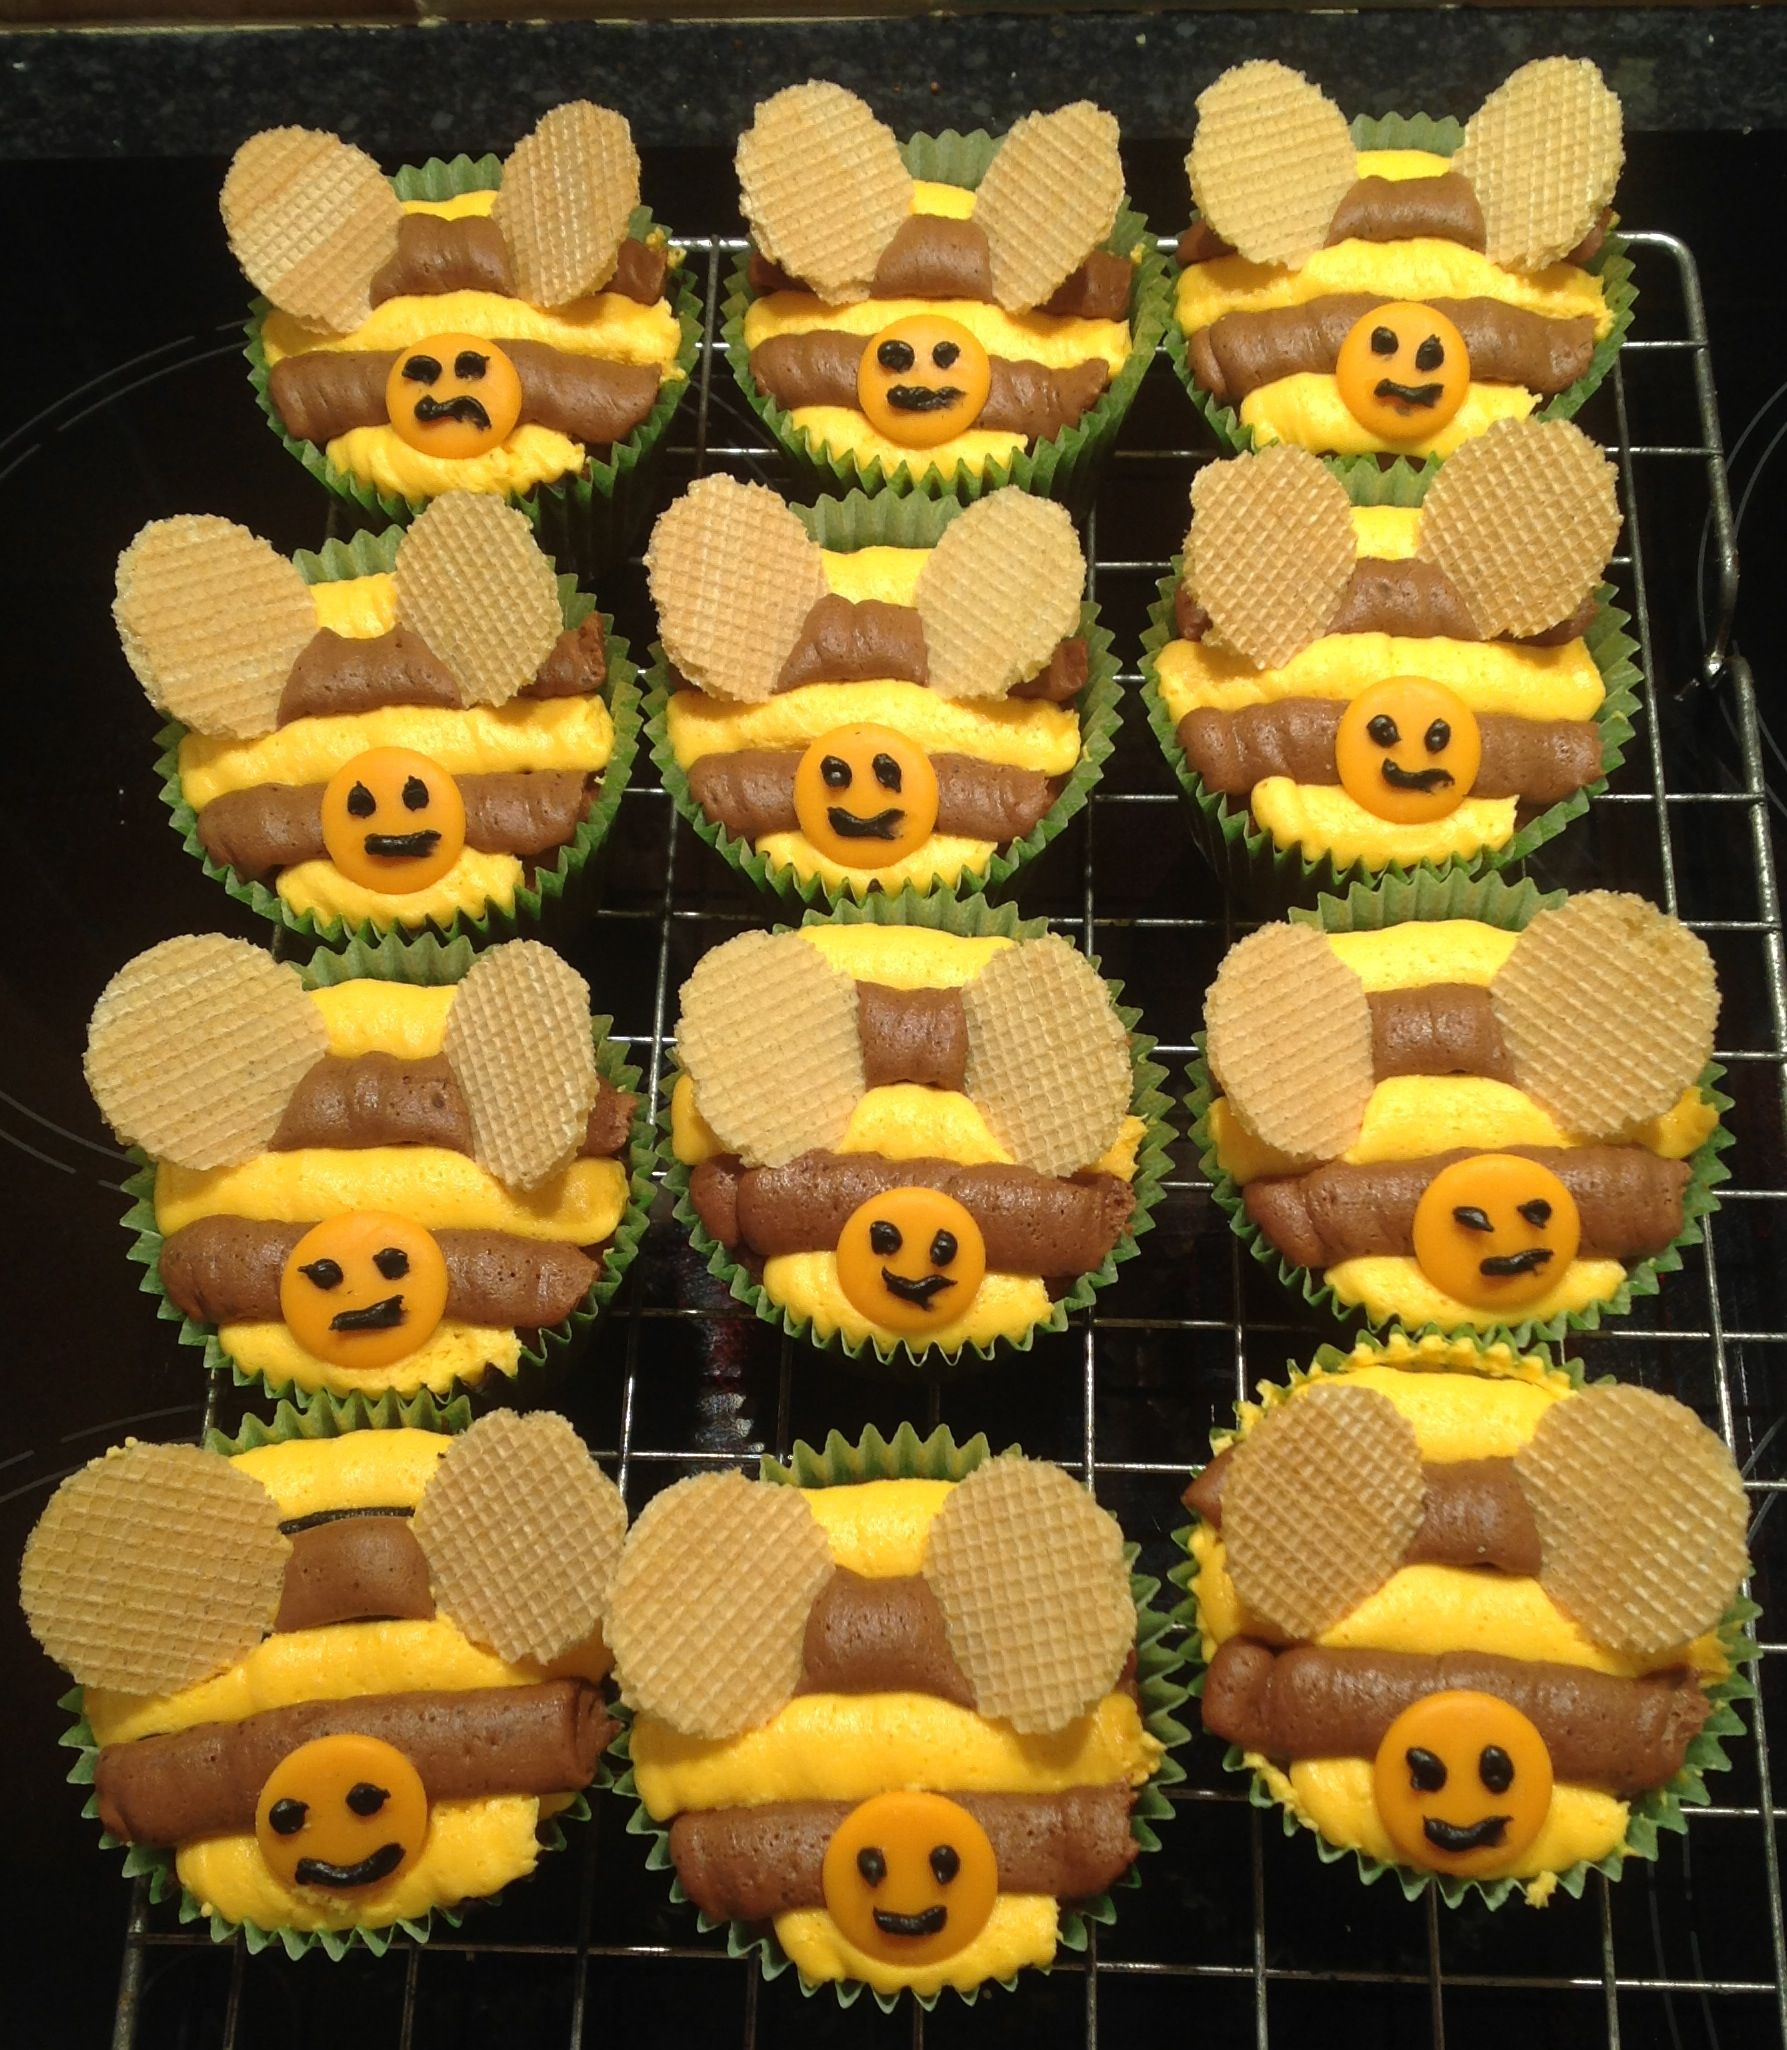 Bee cup cakes - for my dads birthday Yellow and chocolate icing piped in stripes, with orange chocolate buttons for the face, and ice cream wafers for the wings!